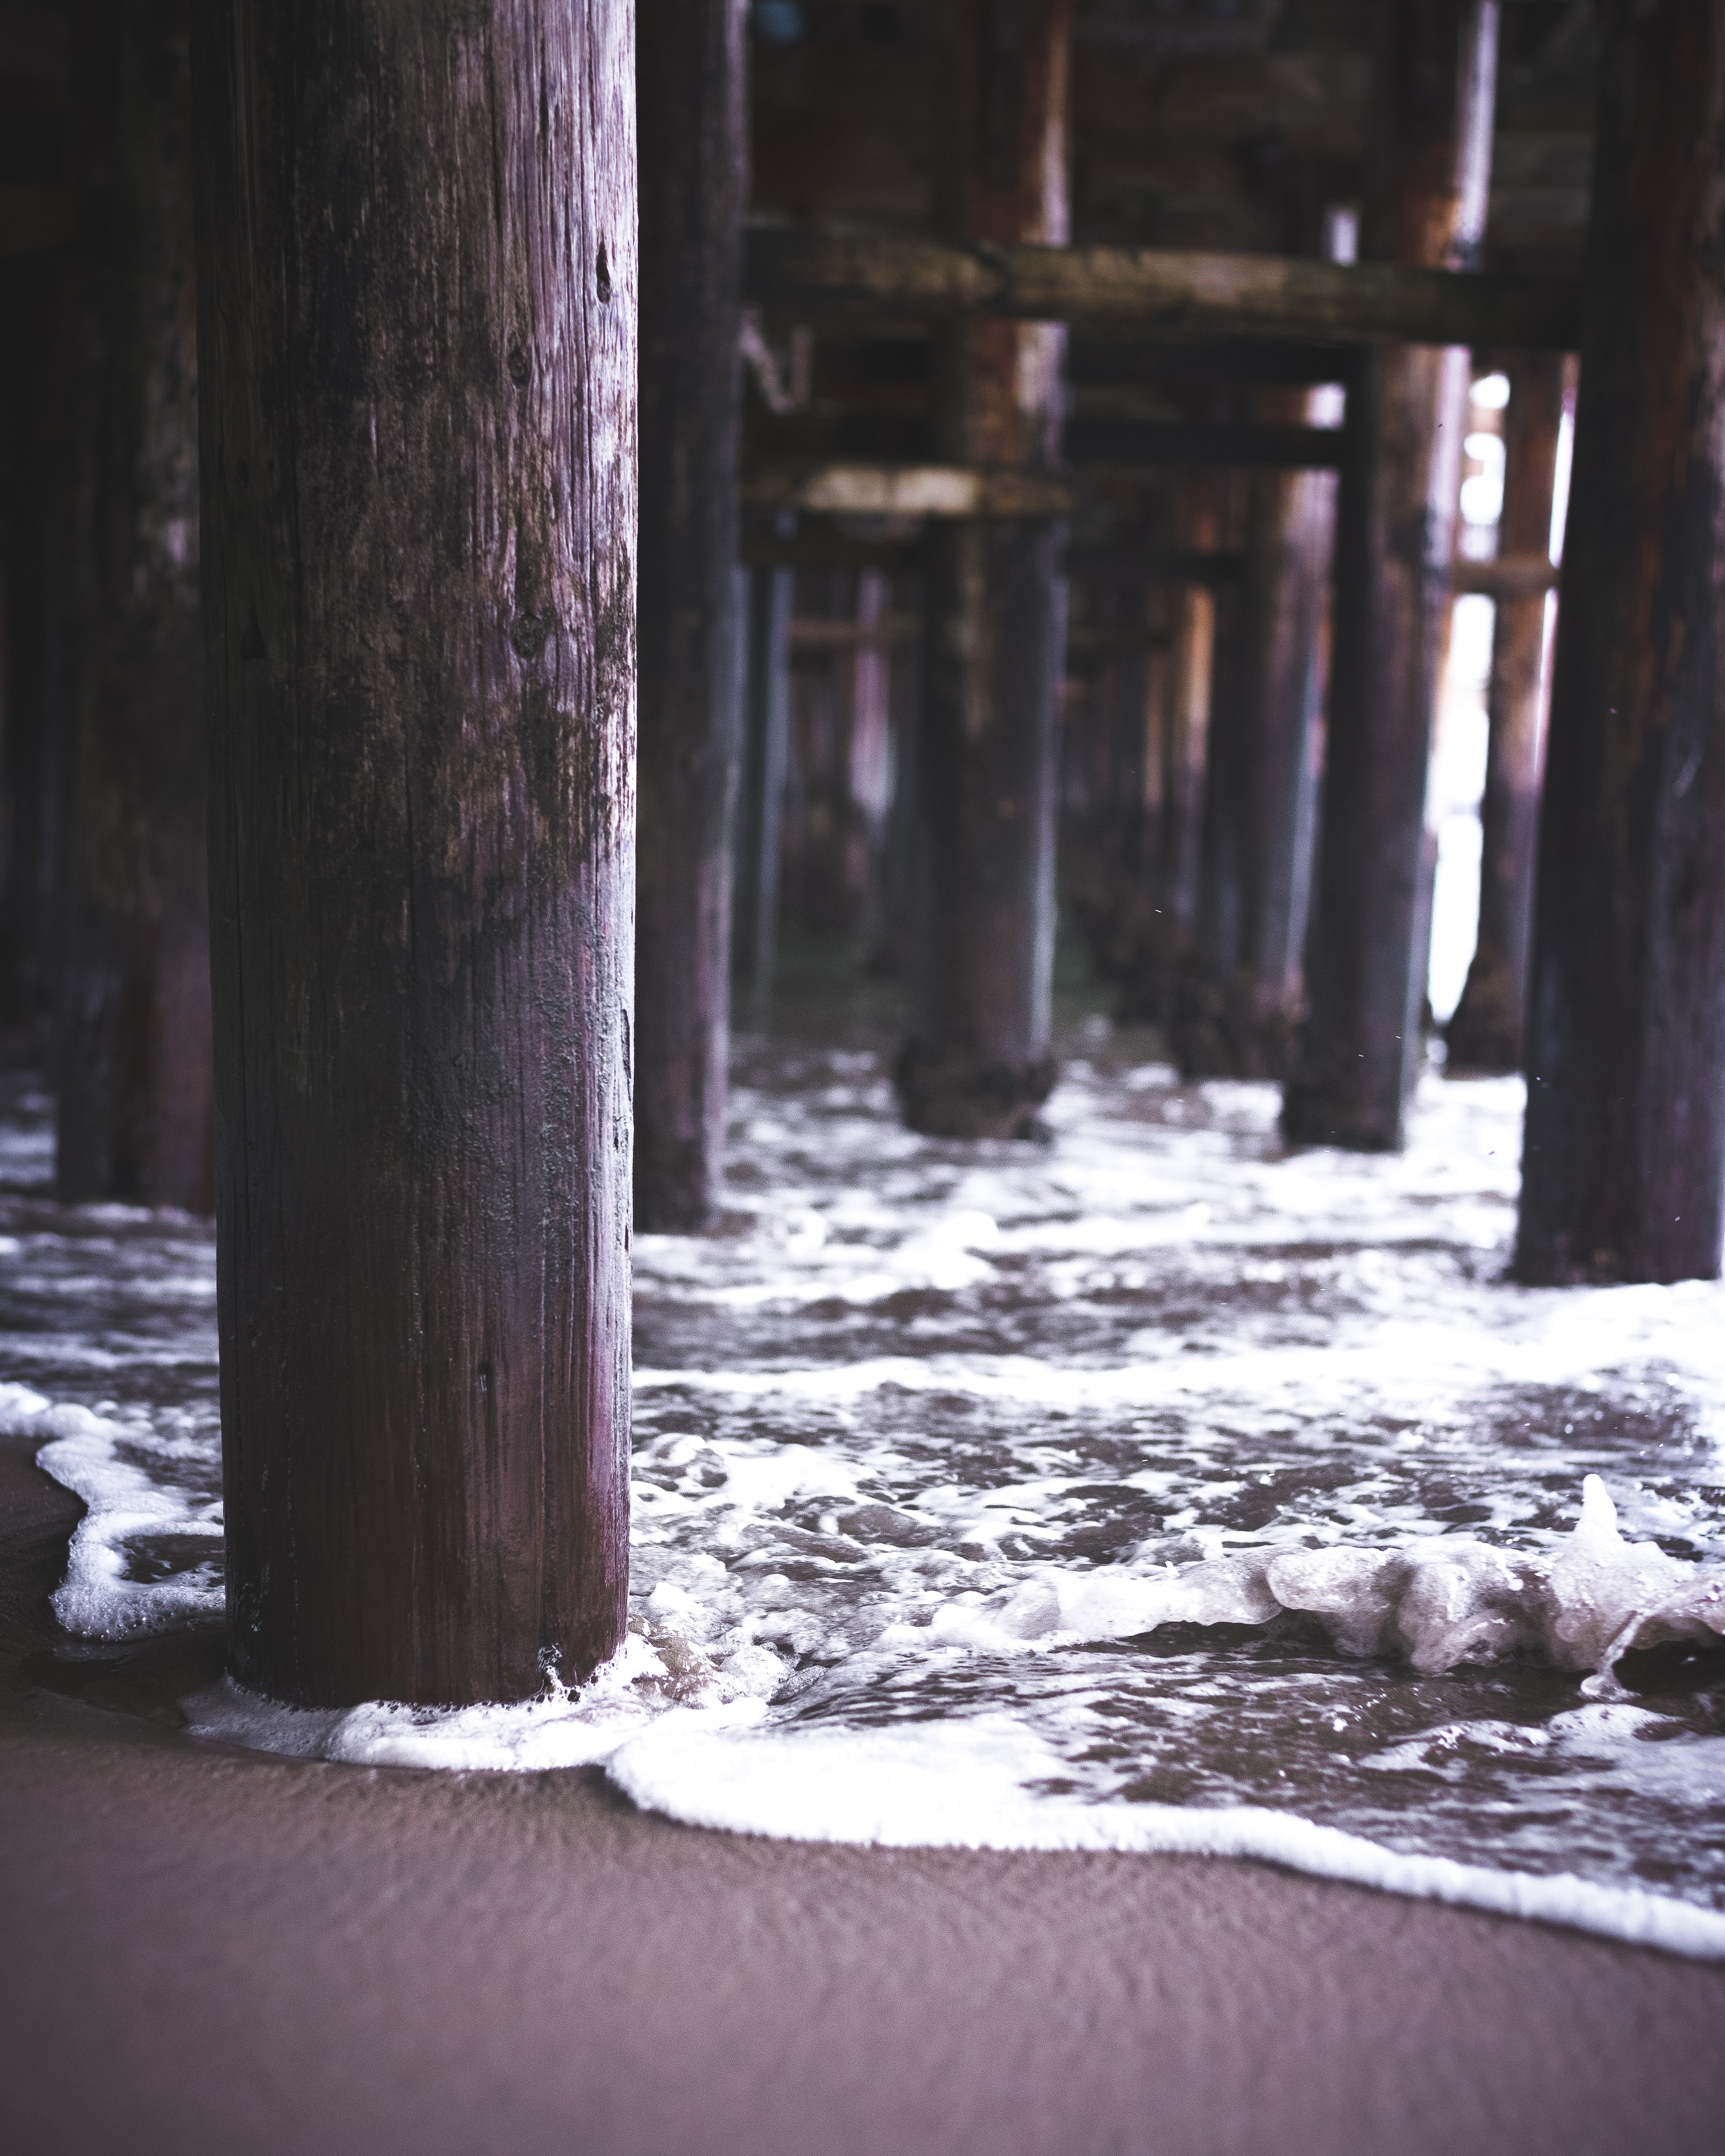 Seaside pier legs reaching down to the sand with whiete water waves washing around them